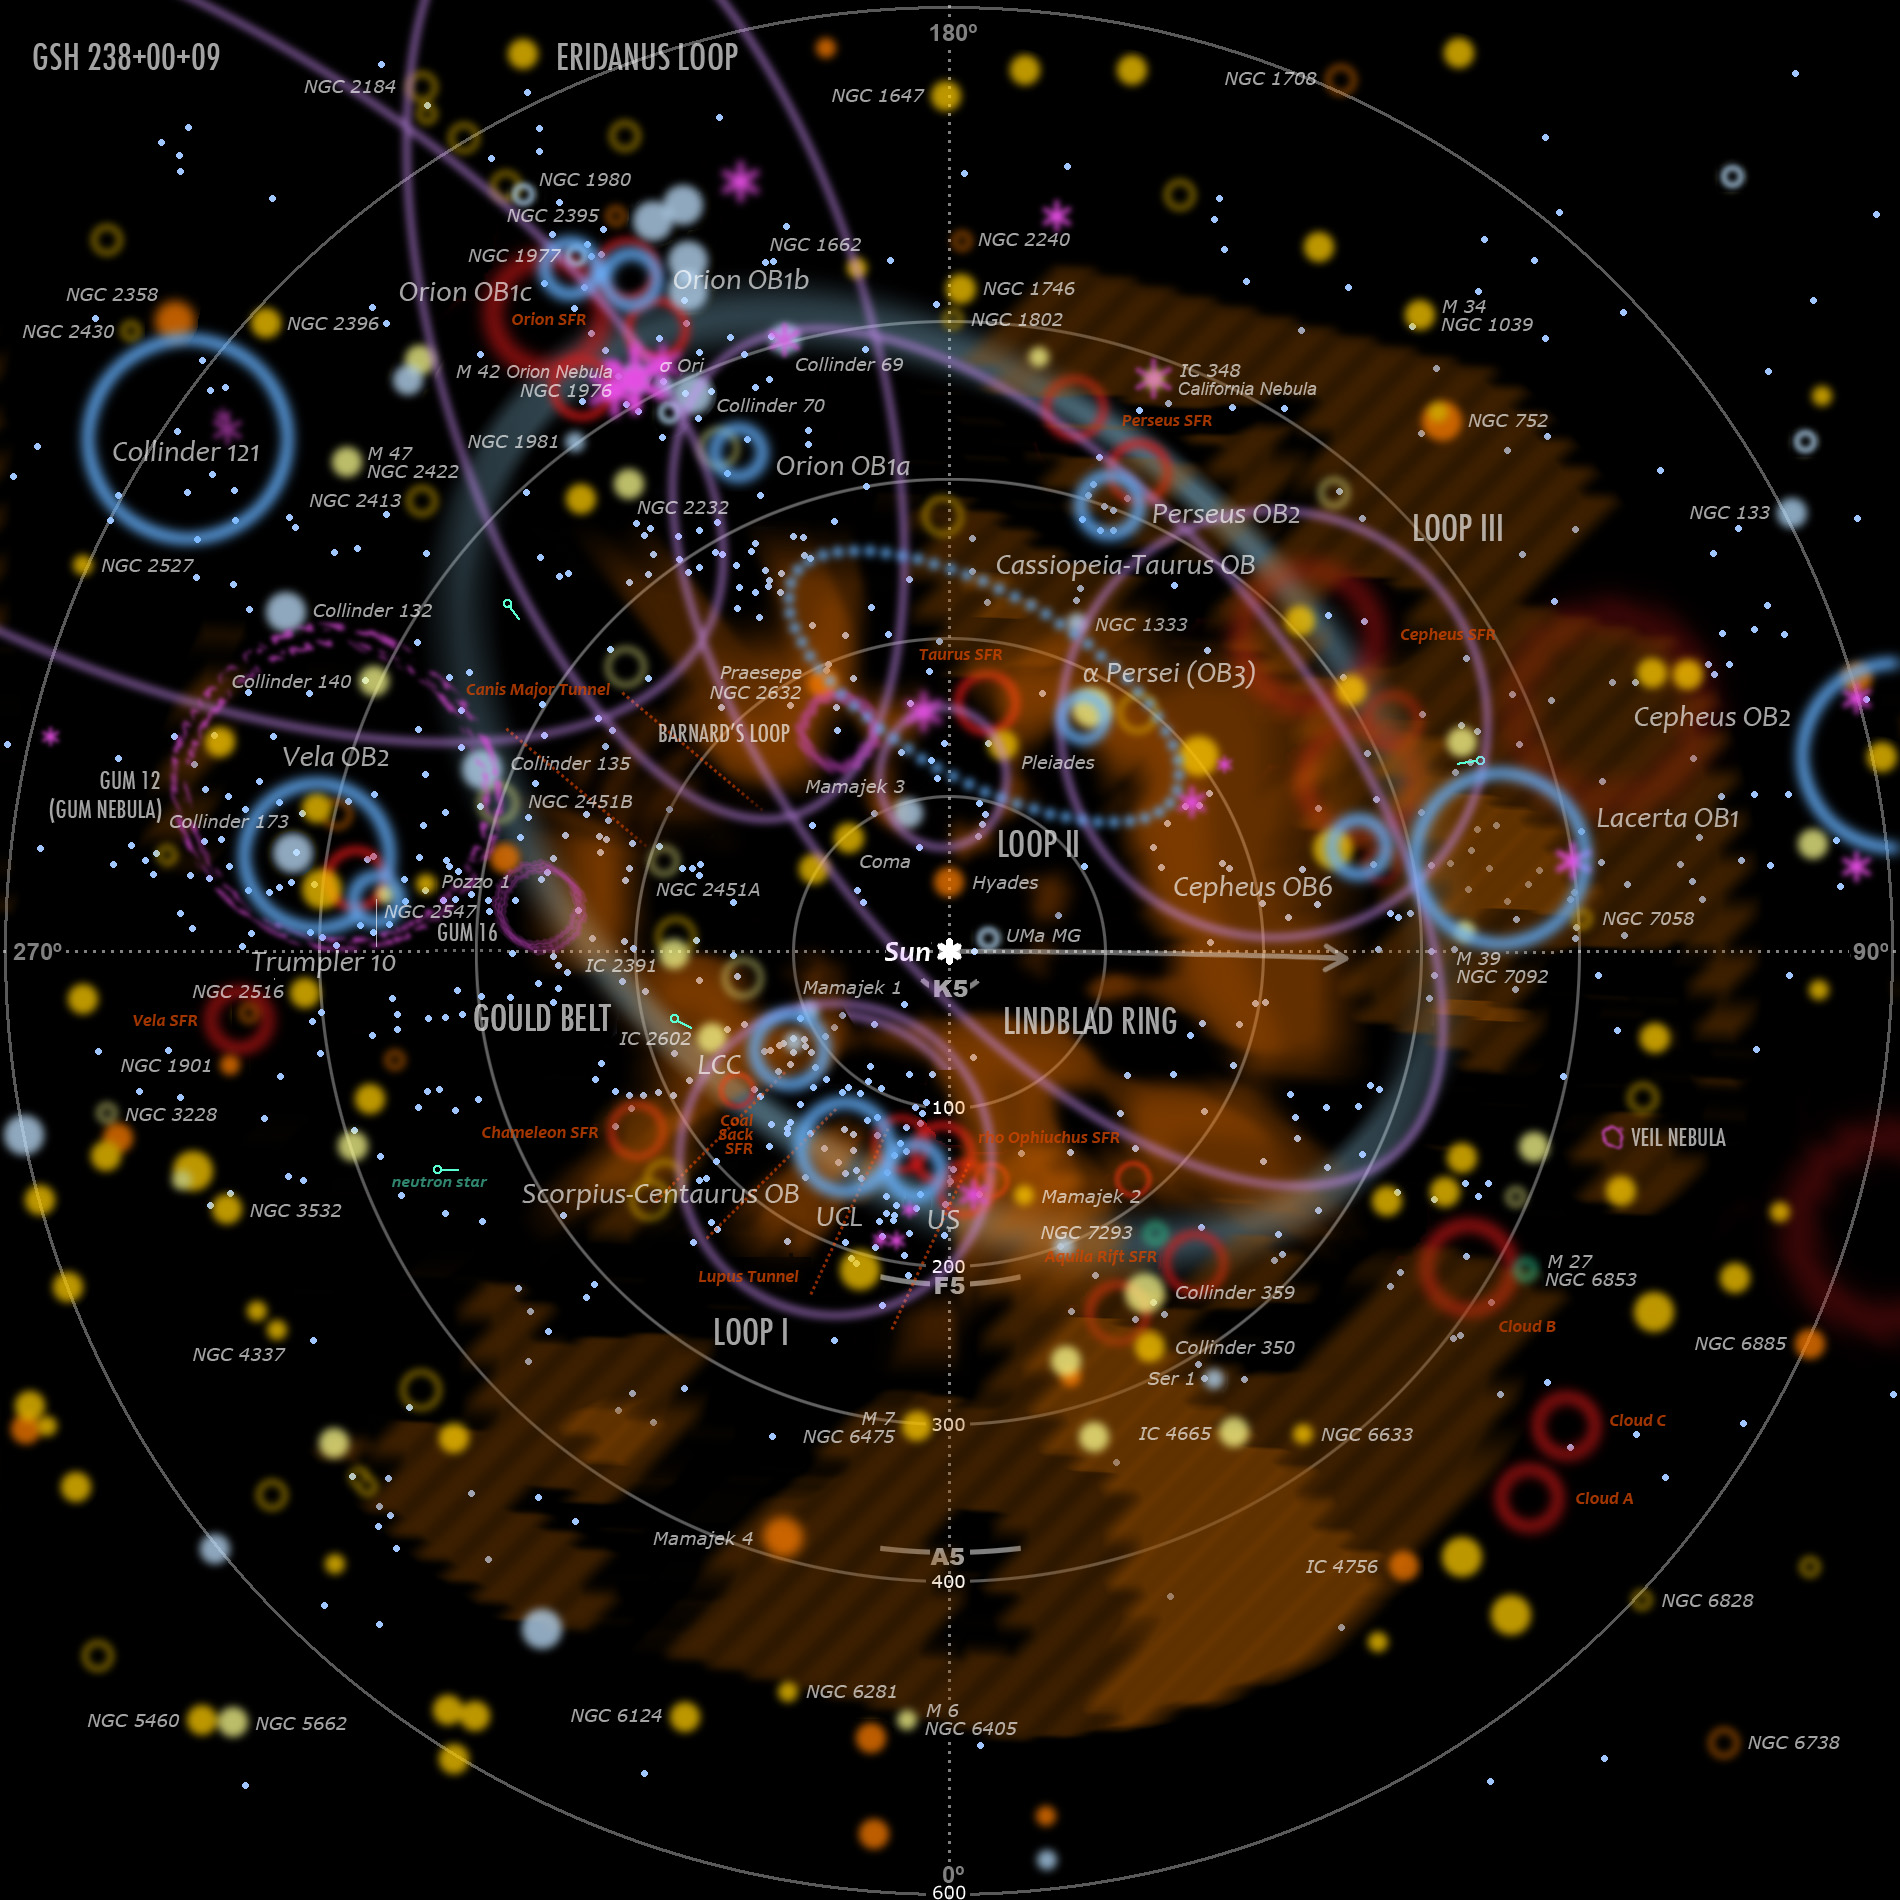 LocalMapL overview of the galaxy